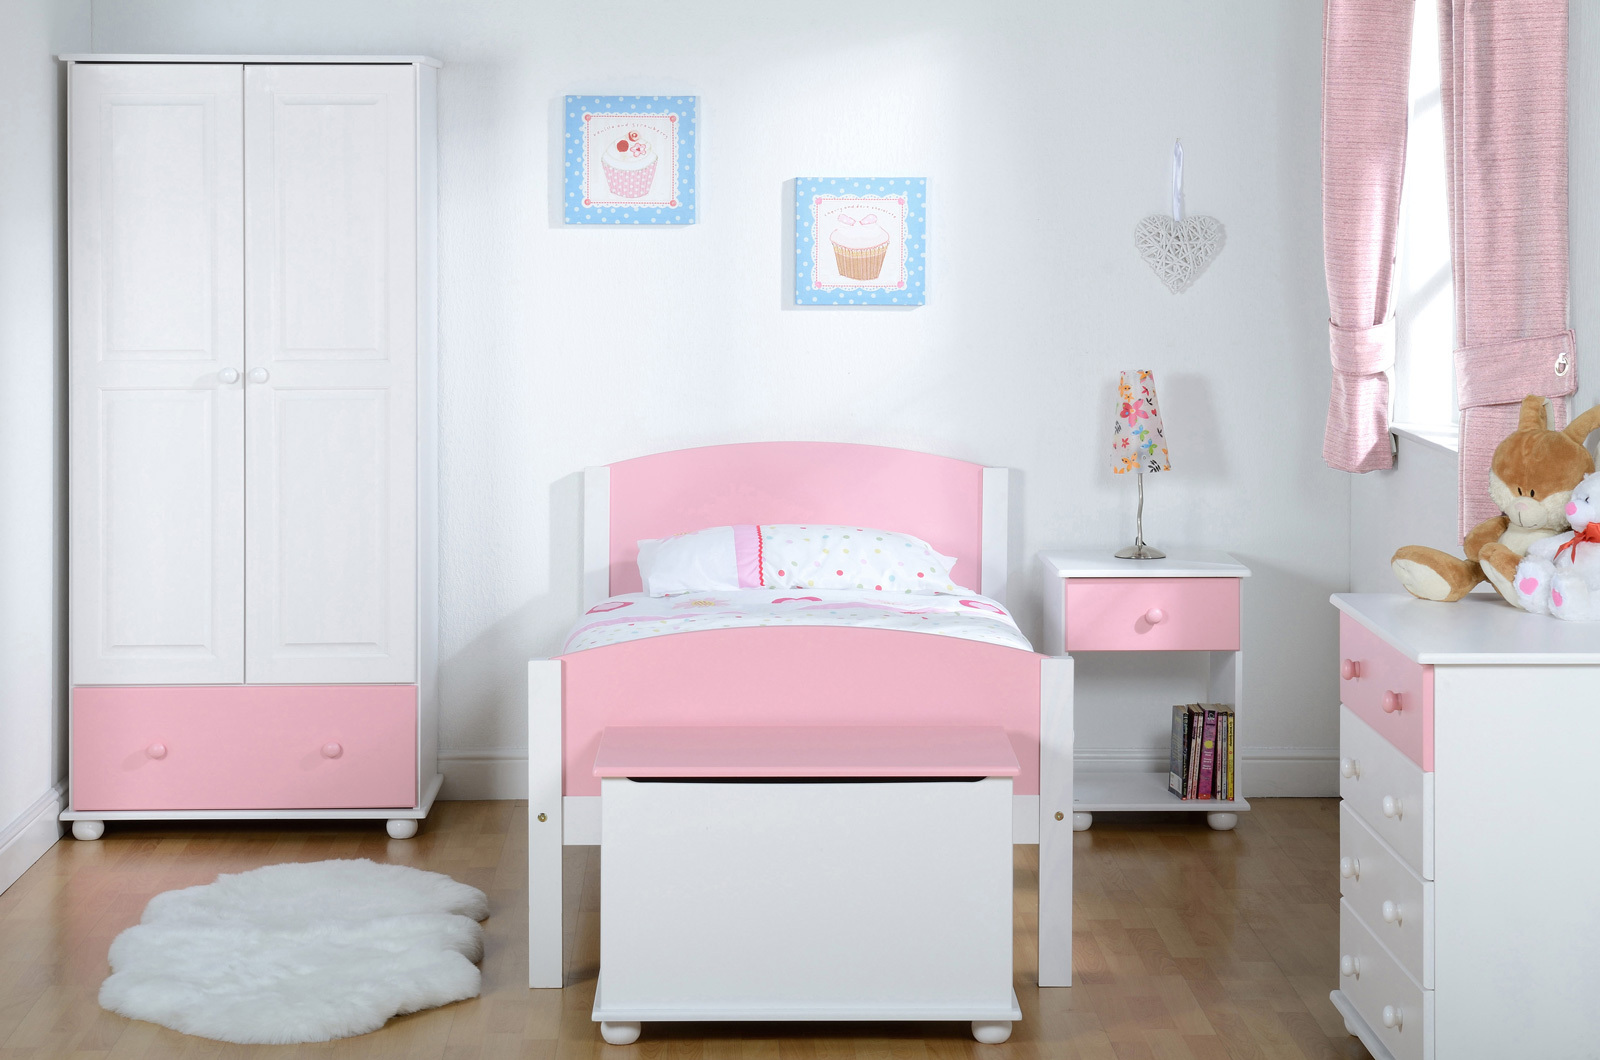 kids bedroom furniture pink white wardrobe bed chest of drawers bedside ottoman | ebay